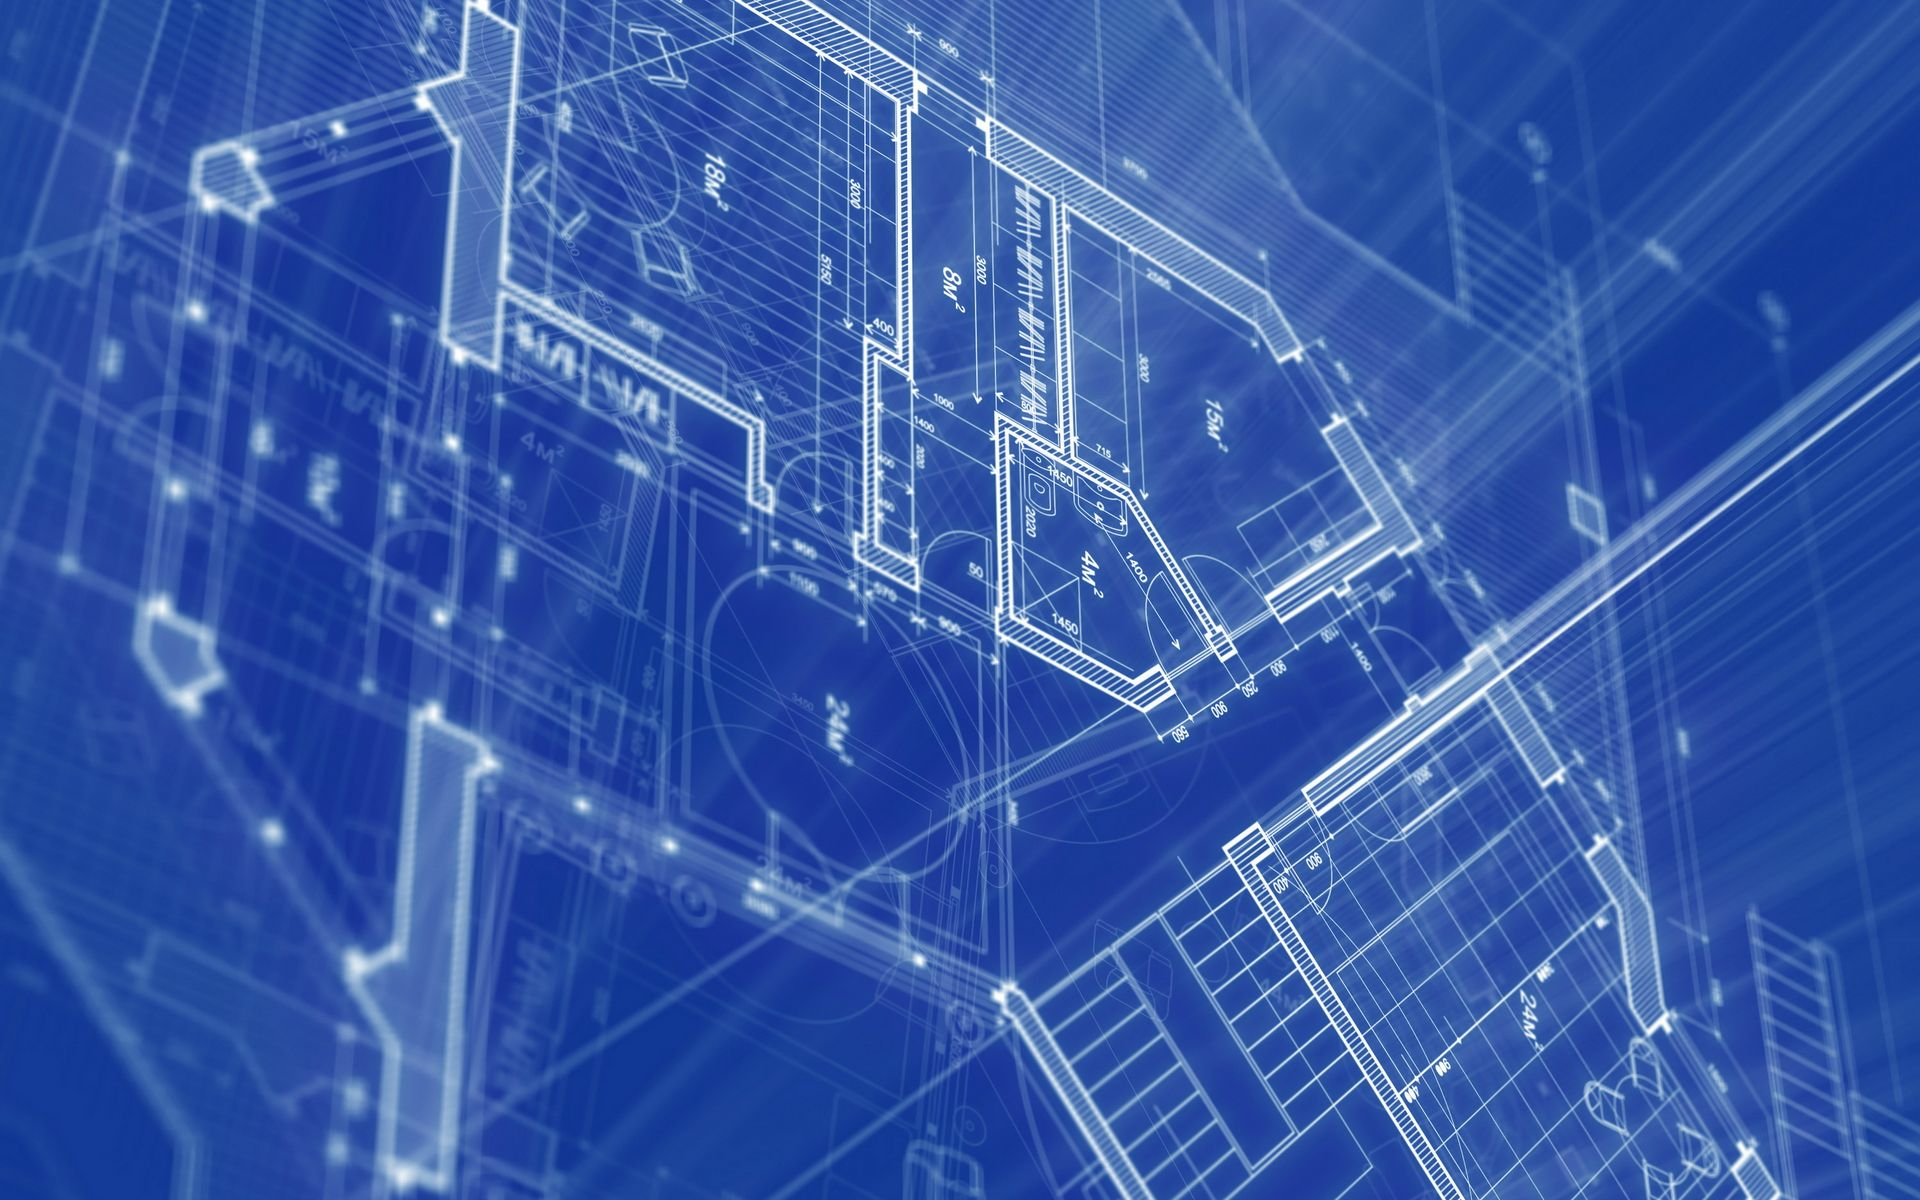 Blueprint Architecture Hd Widescreen Desktop Wallpaper Blueprint